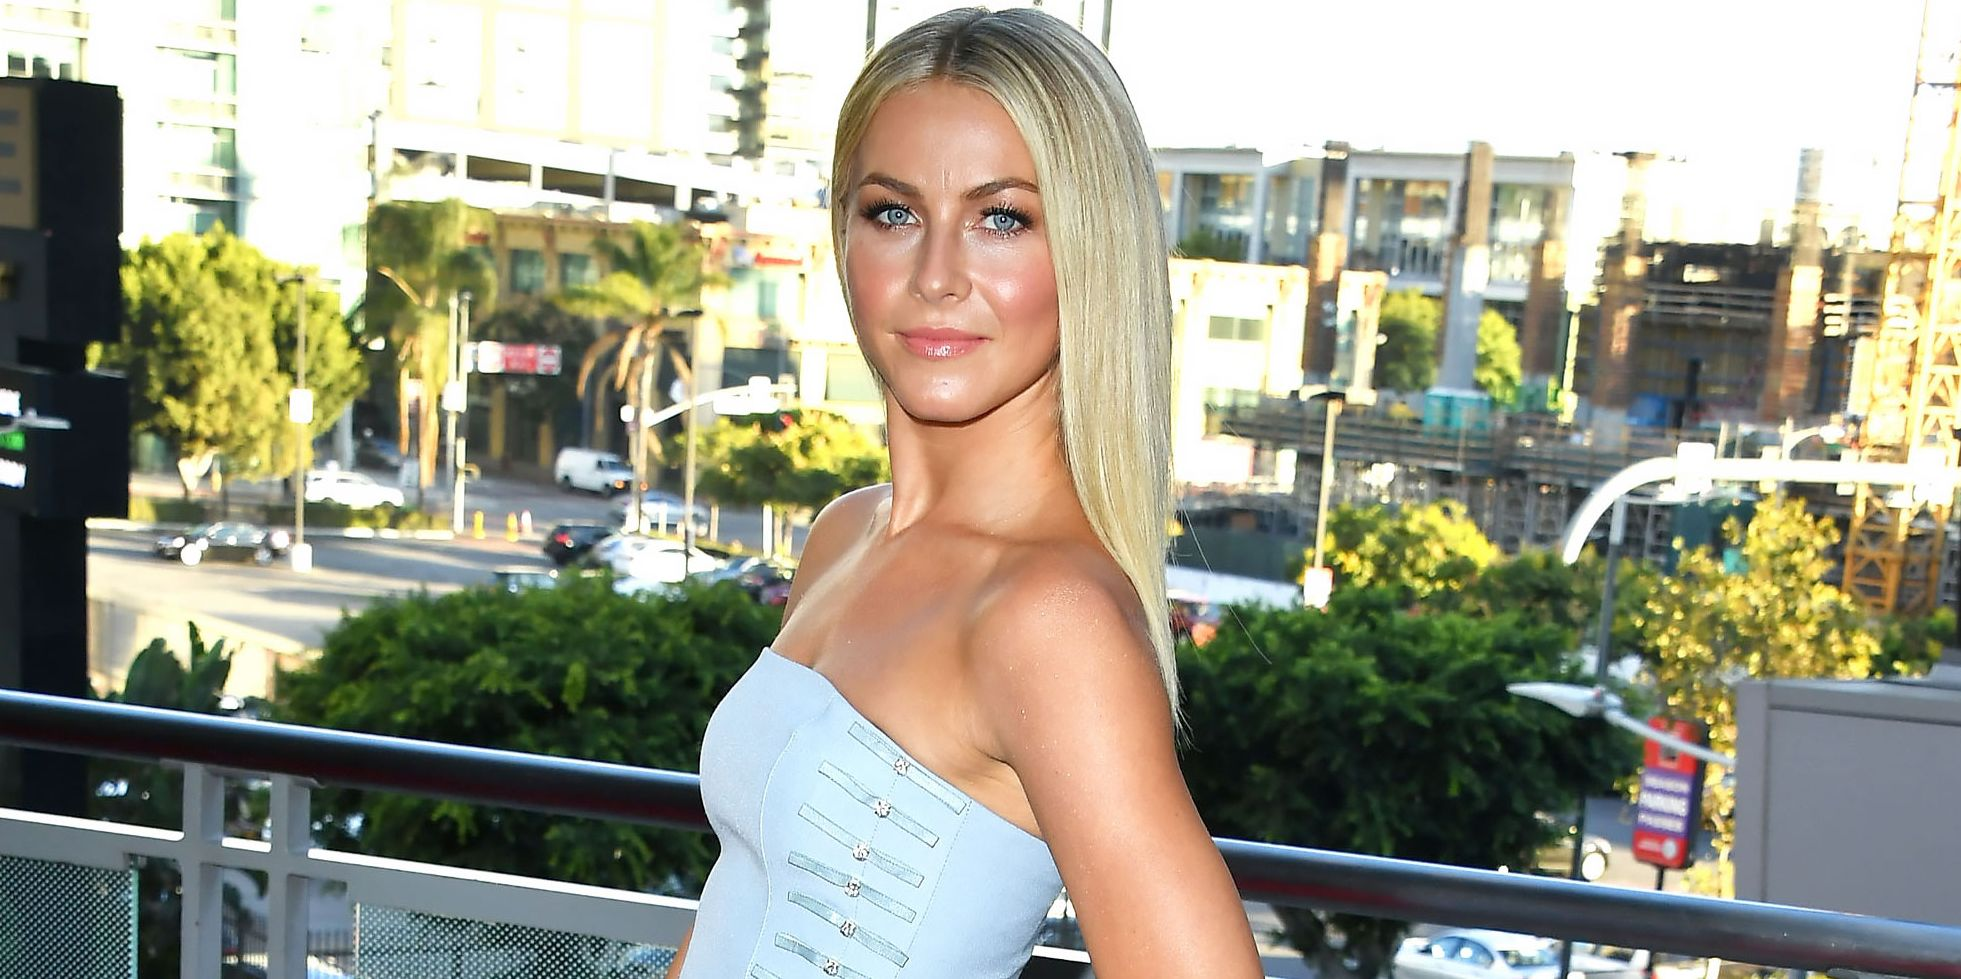 Julianne Hough Took a Topless Break From Her Honeymoon to Celebrate Her Birthday